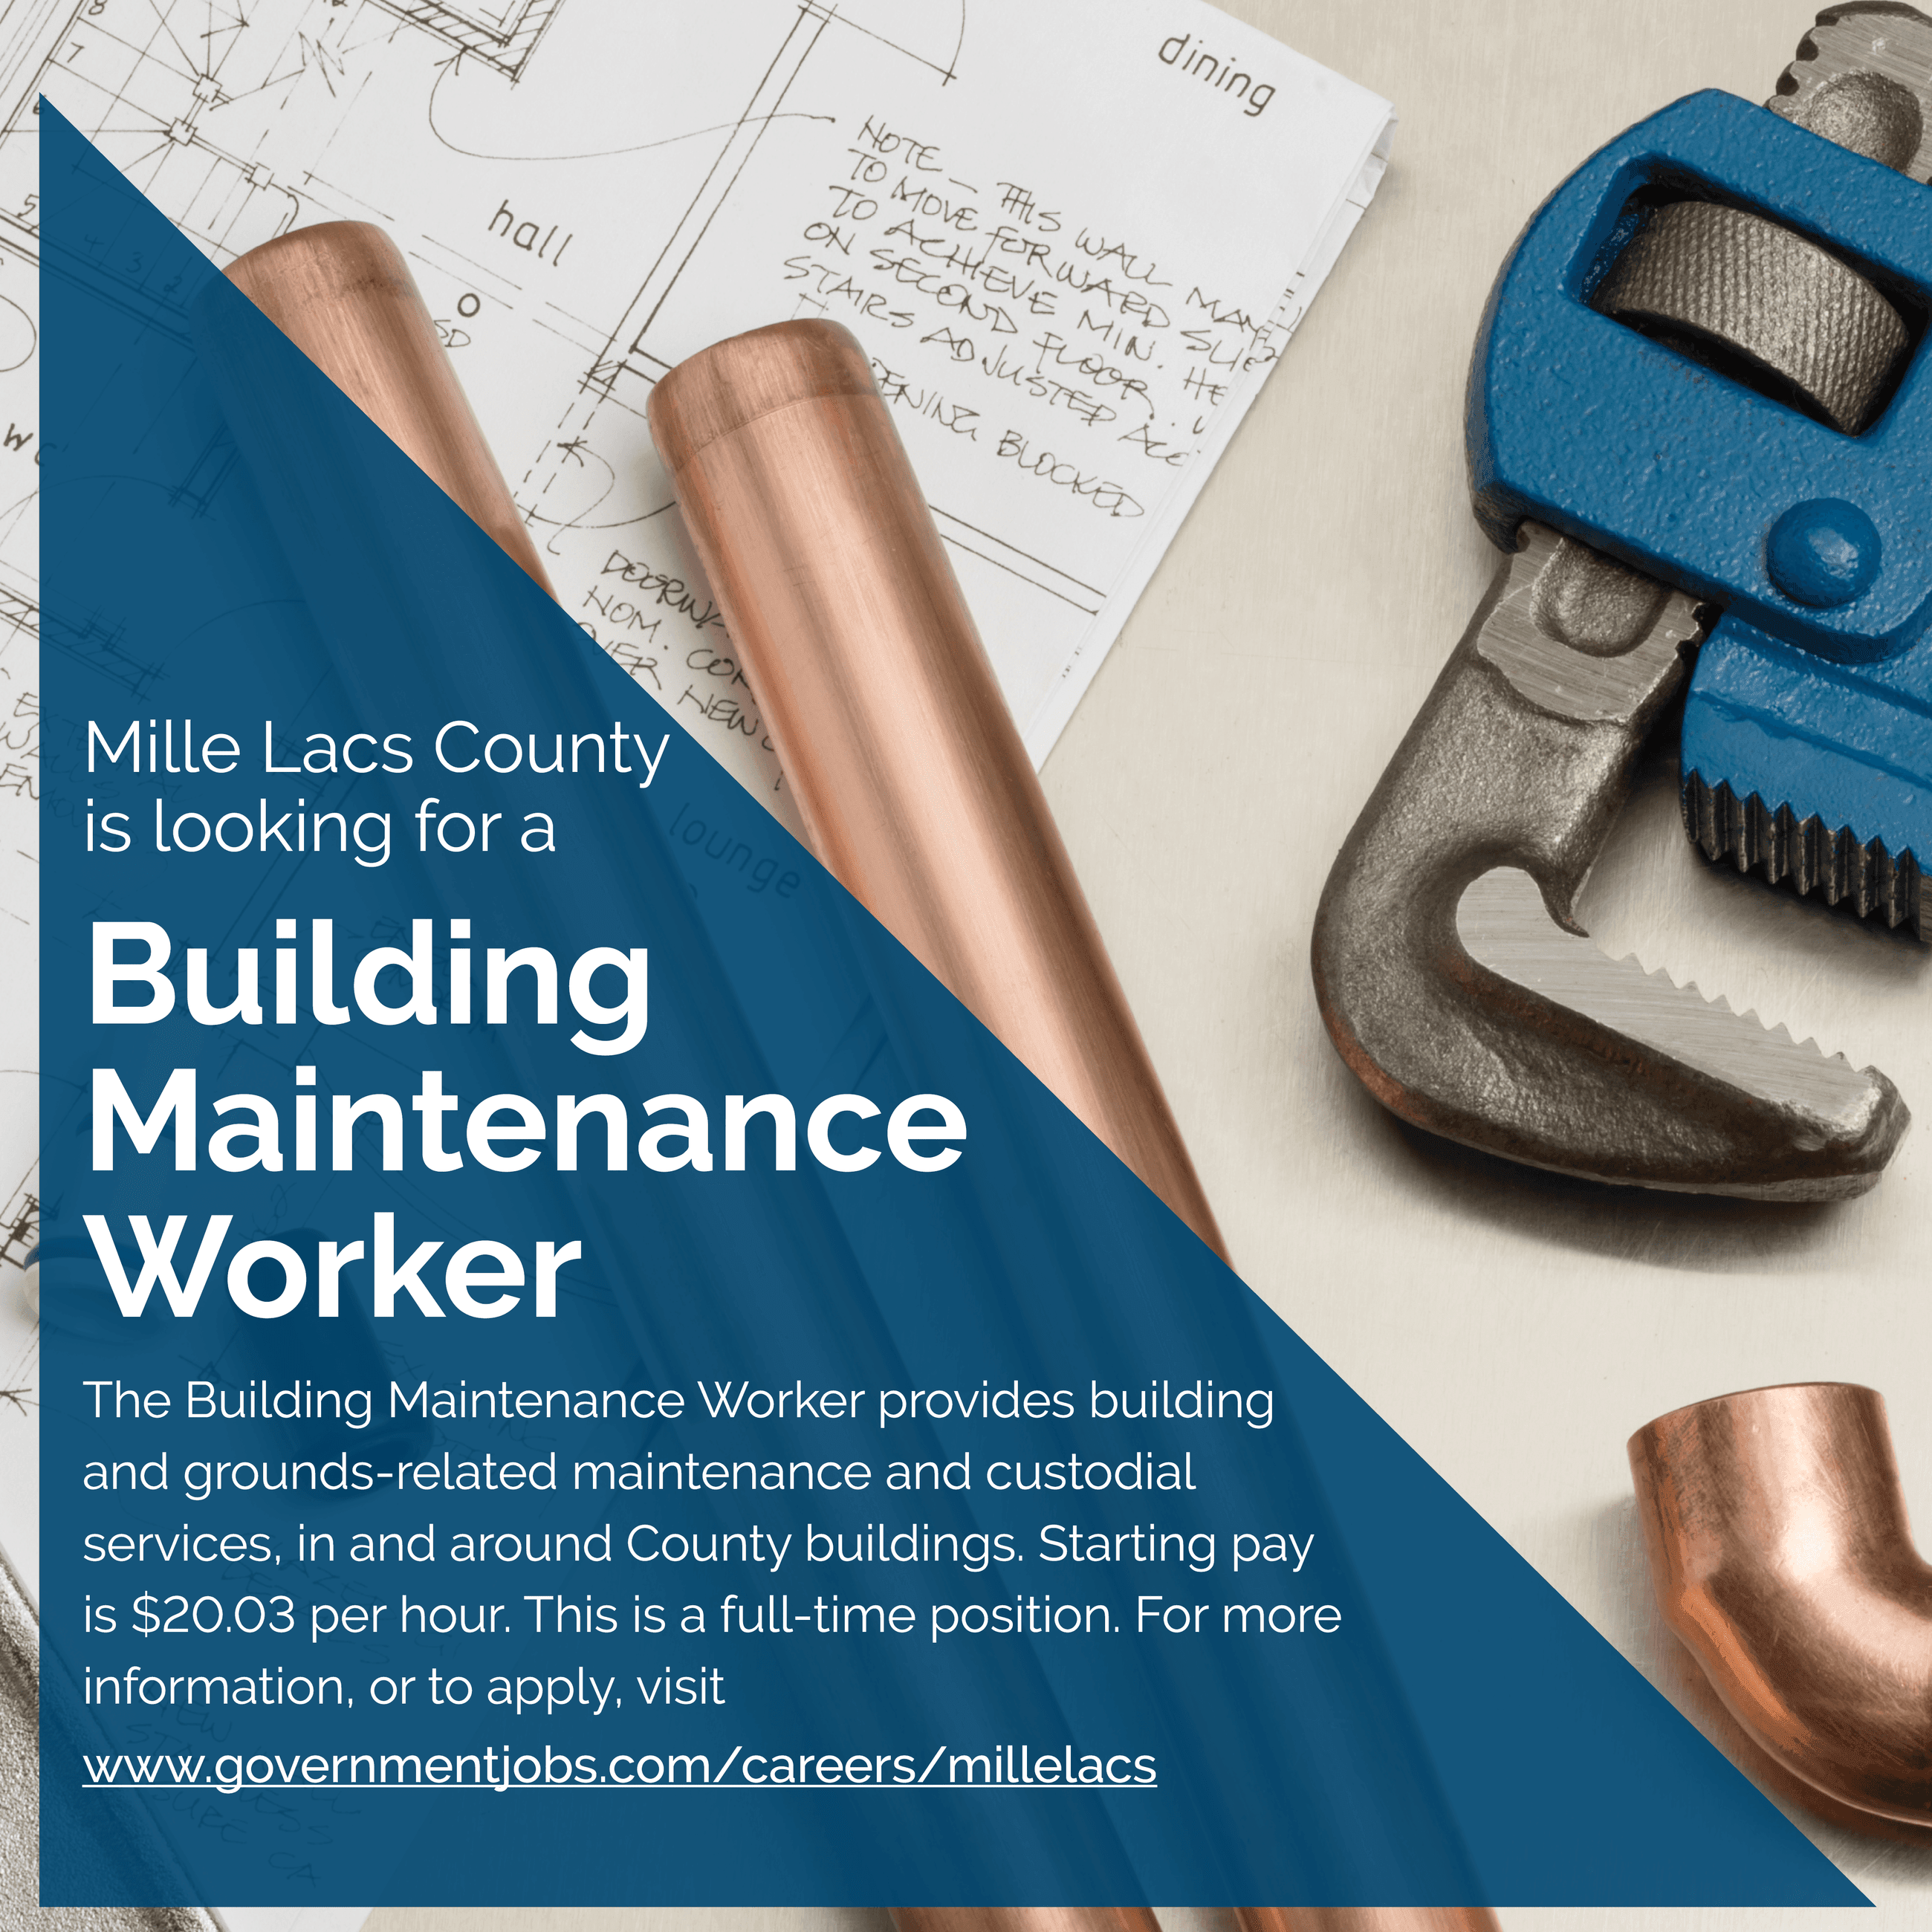 Mille Lacs County is looking for a Building Maintenance Worker.